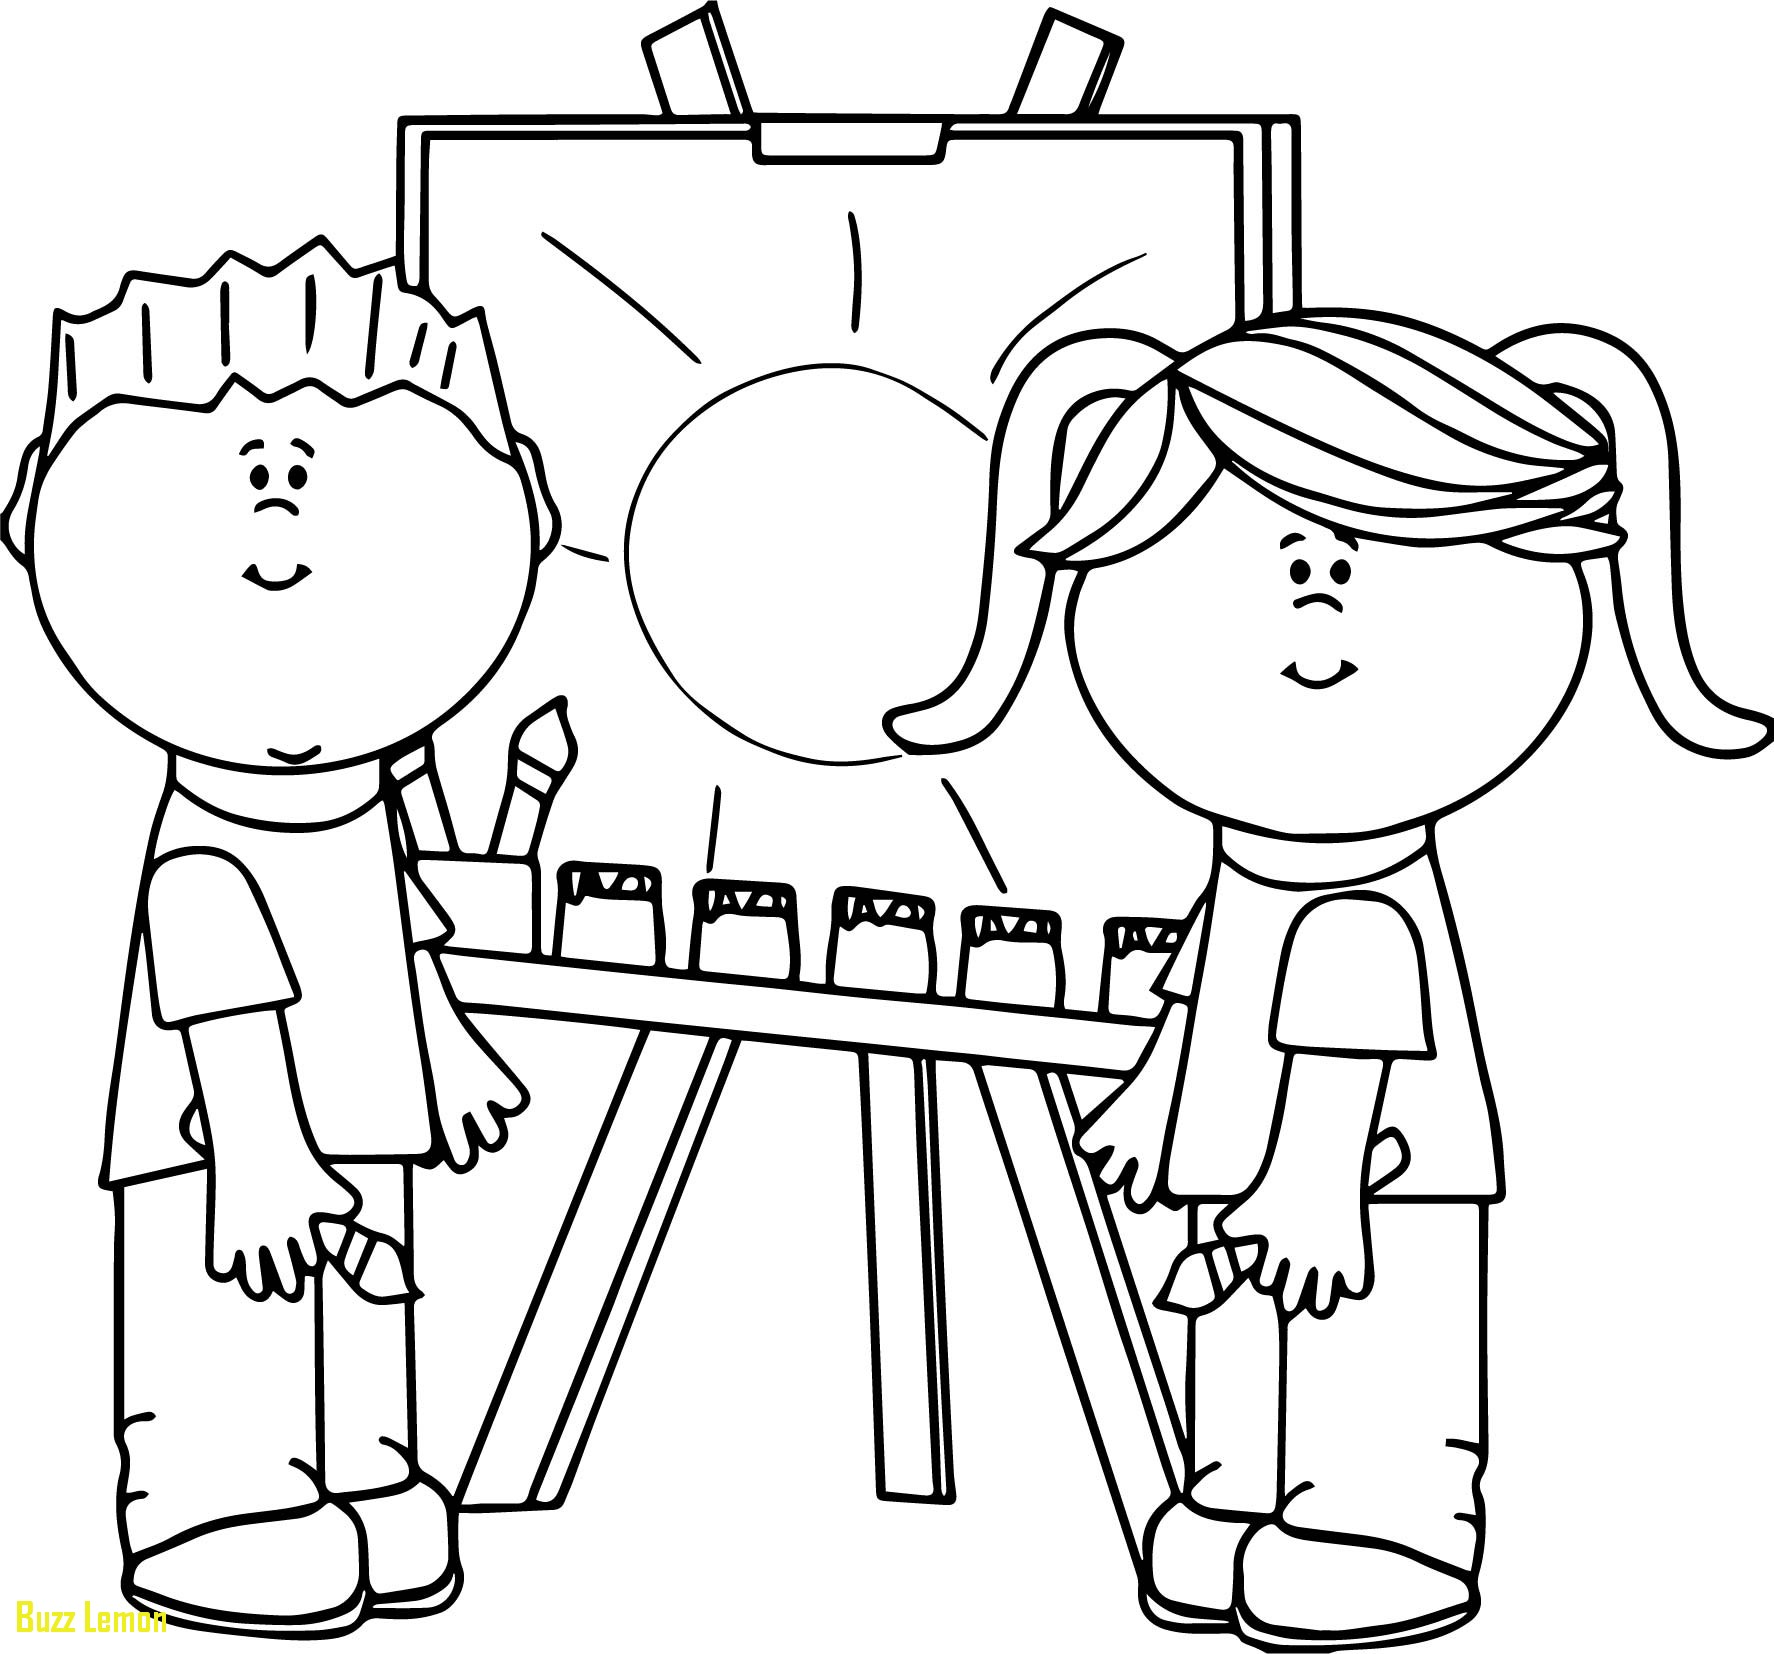 Paint Palette Coloring Pages At Getcolorings